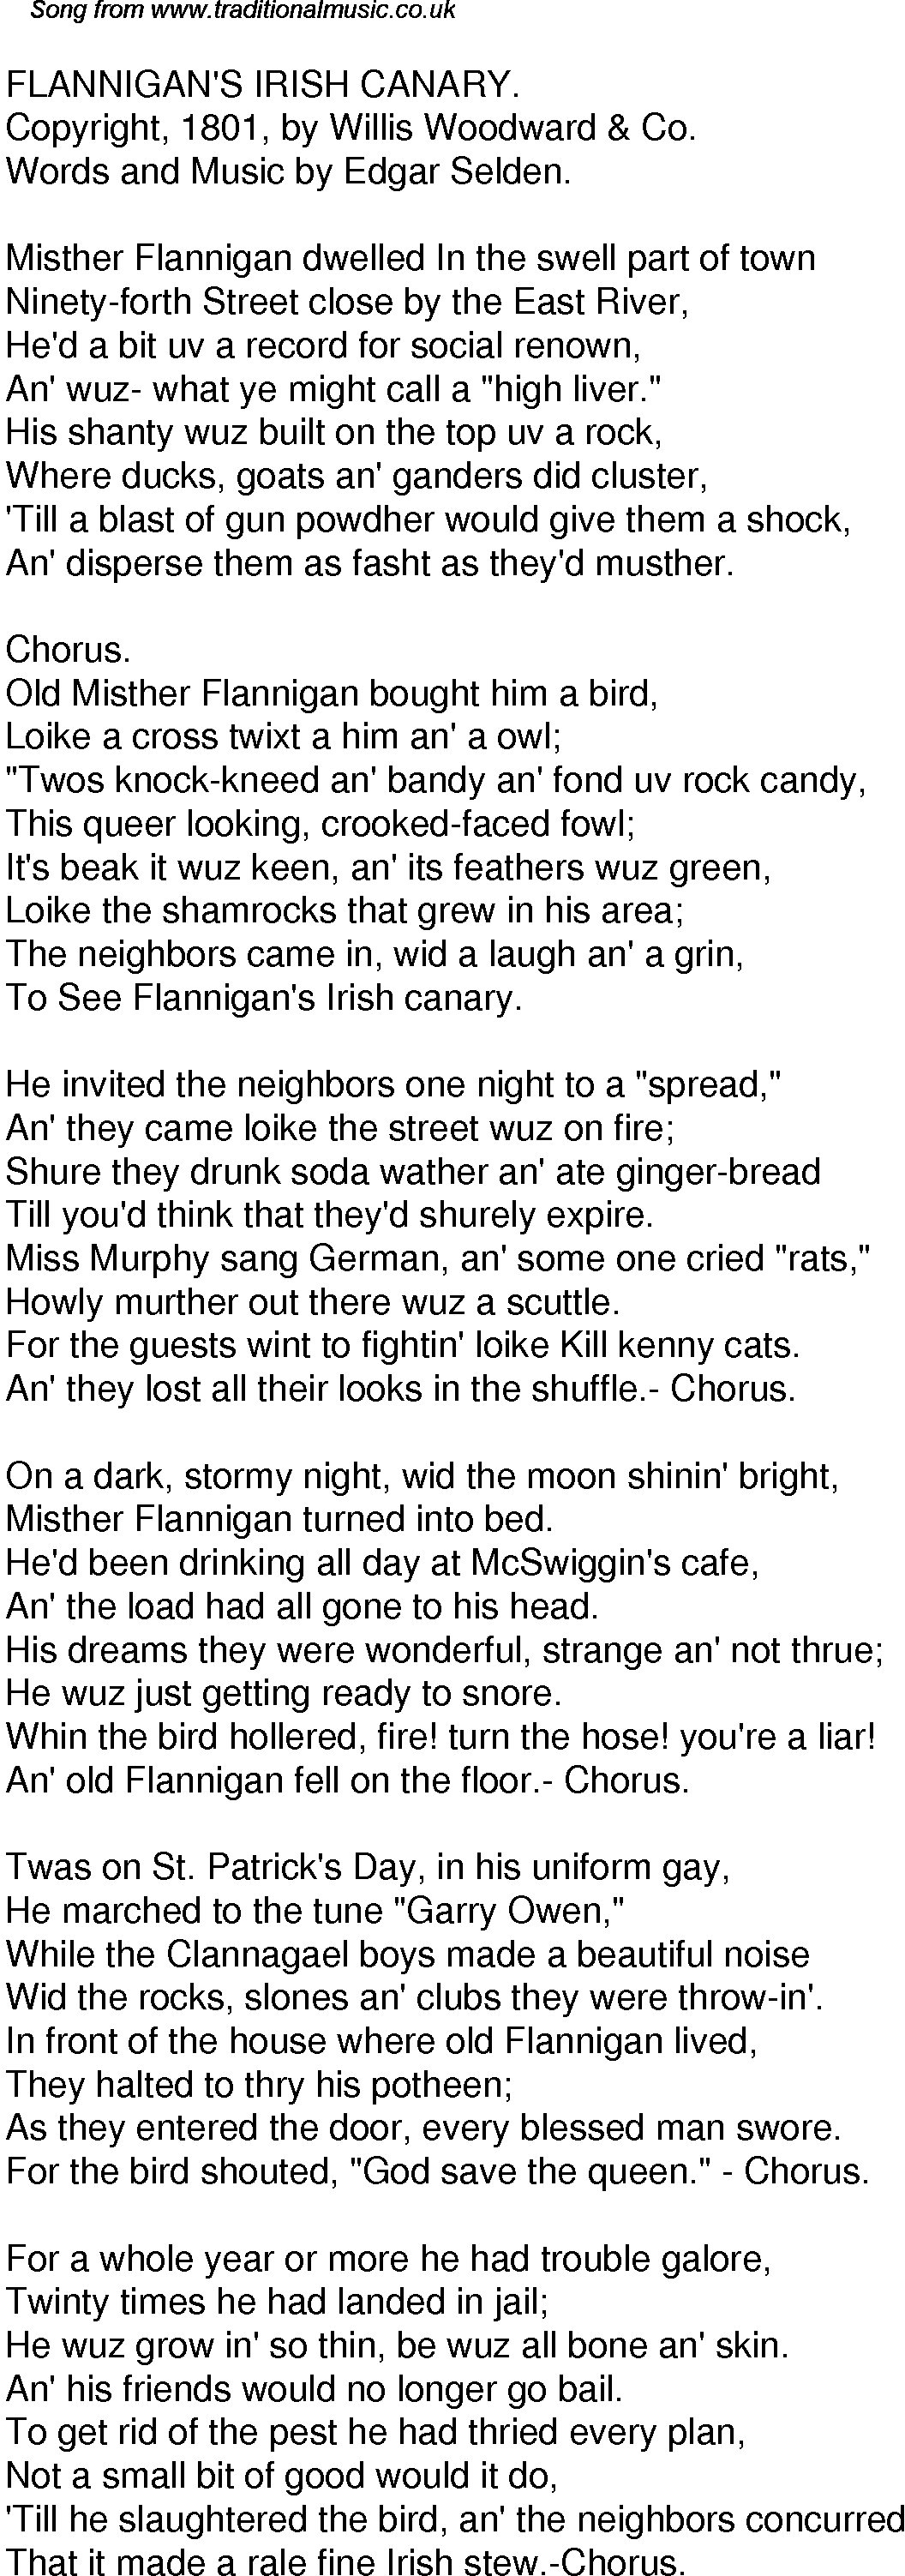 Old Time Song Lyrics for 35 Flannigans Irish Canary